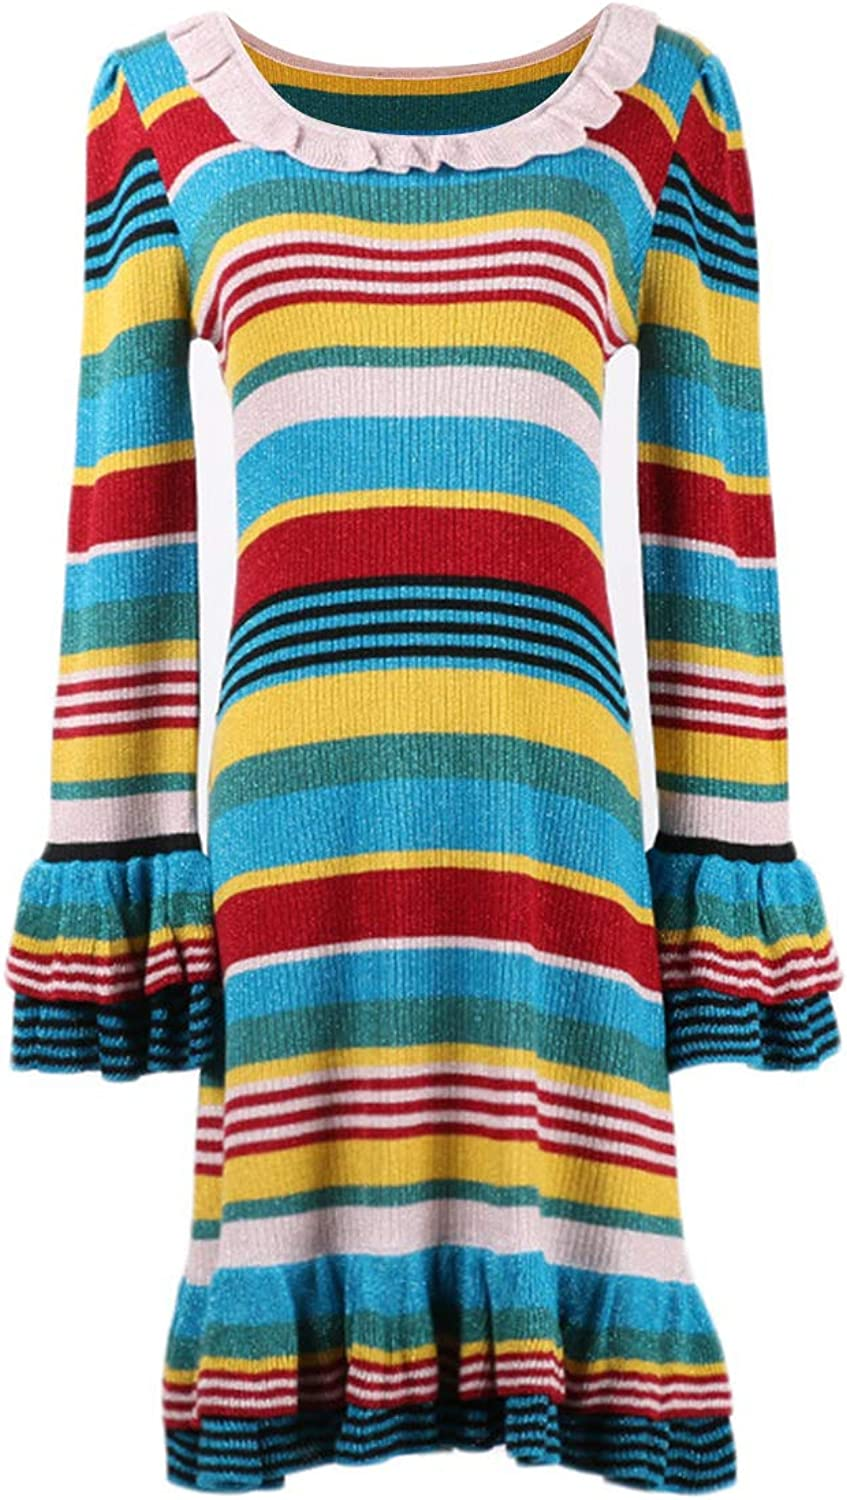 Wfaviudixma colorblock Stripe High Waist Midi Dress Flare Sleeve O Neck Knitted ALine Dress